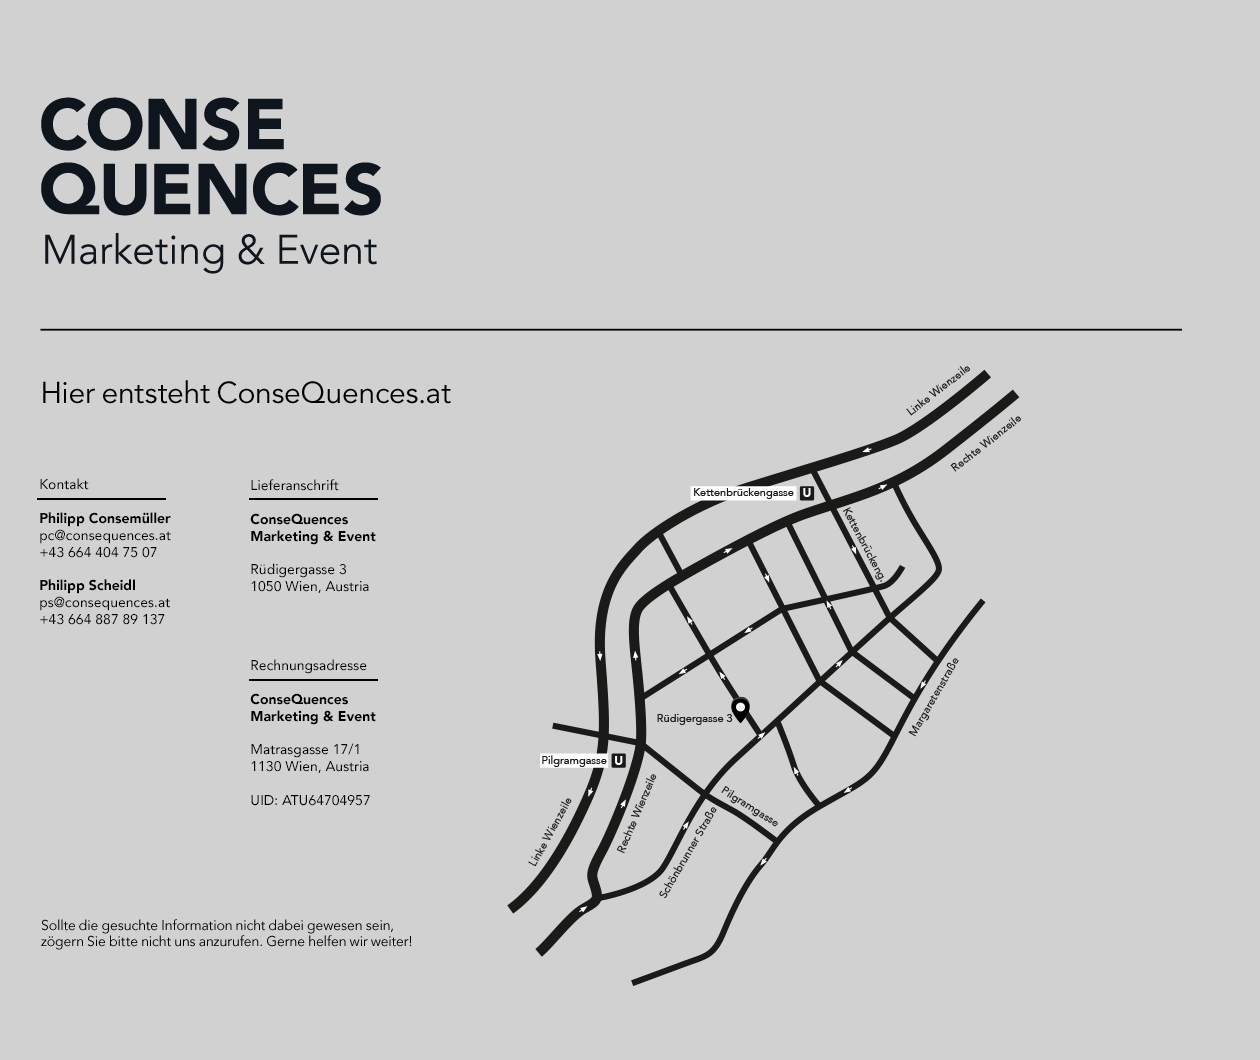 ConseQuences - Marketing & Event, Philipp Consemueller